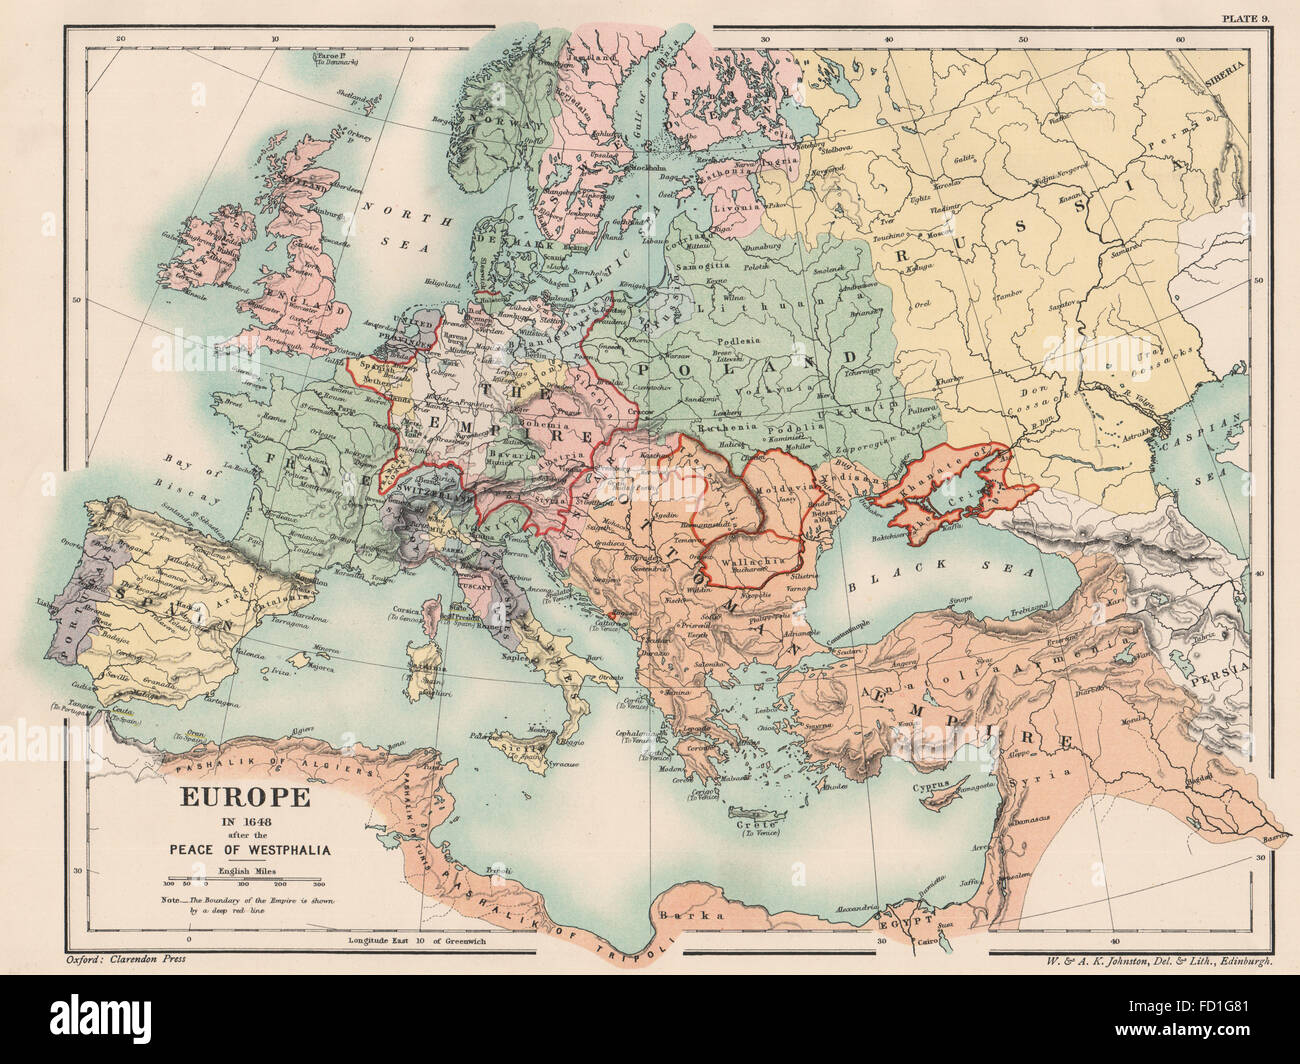 EUROPE IN After The Peace Of Westphalia Holy Roman Empire - Europe map 1648 westphalia